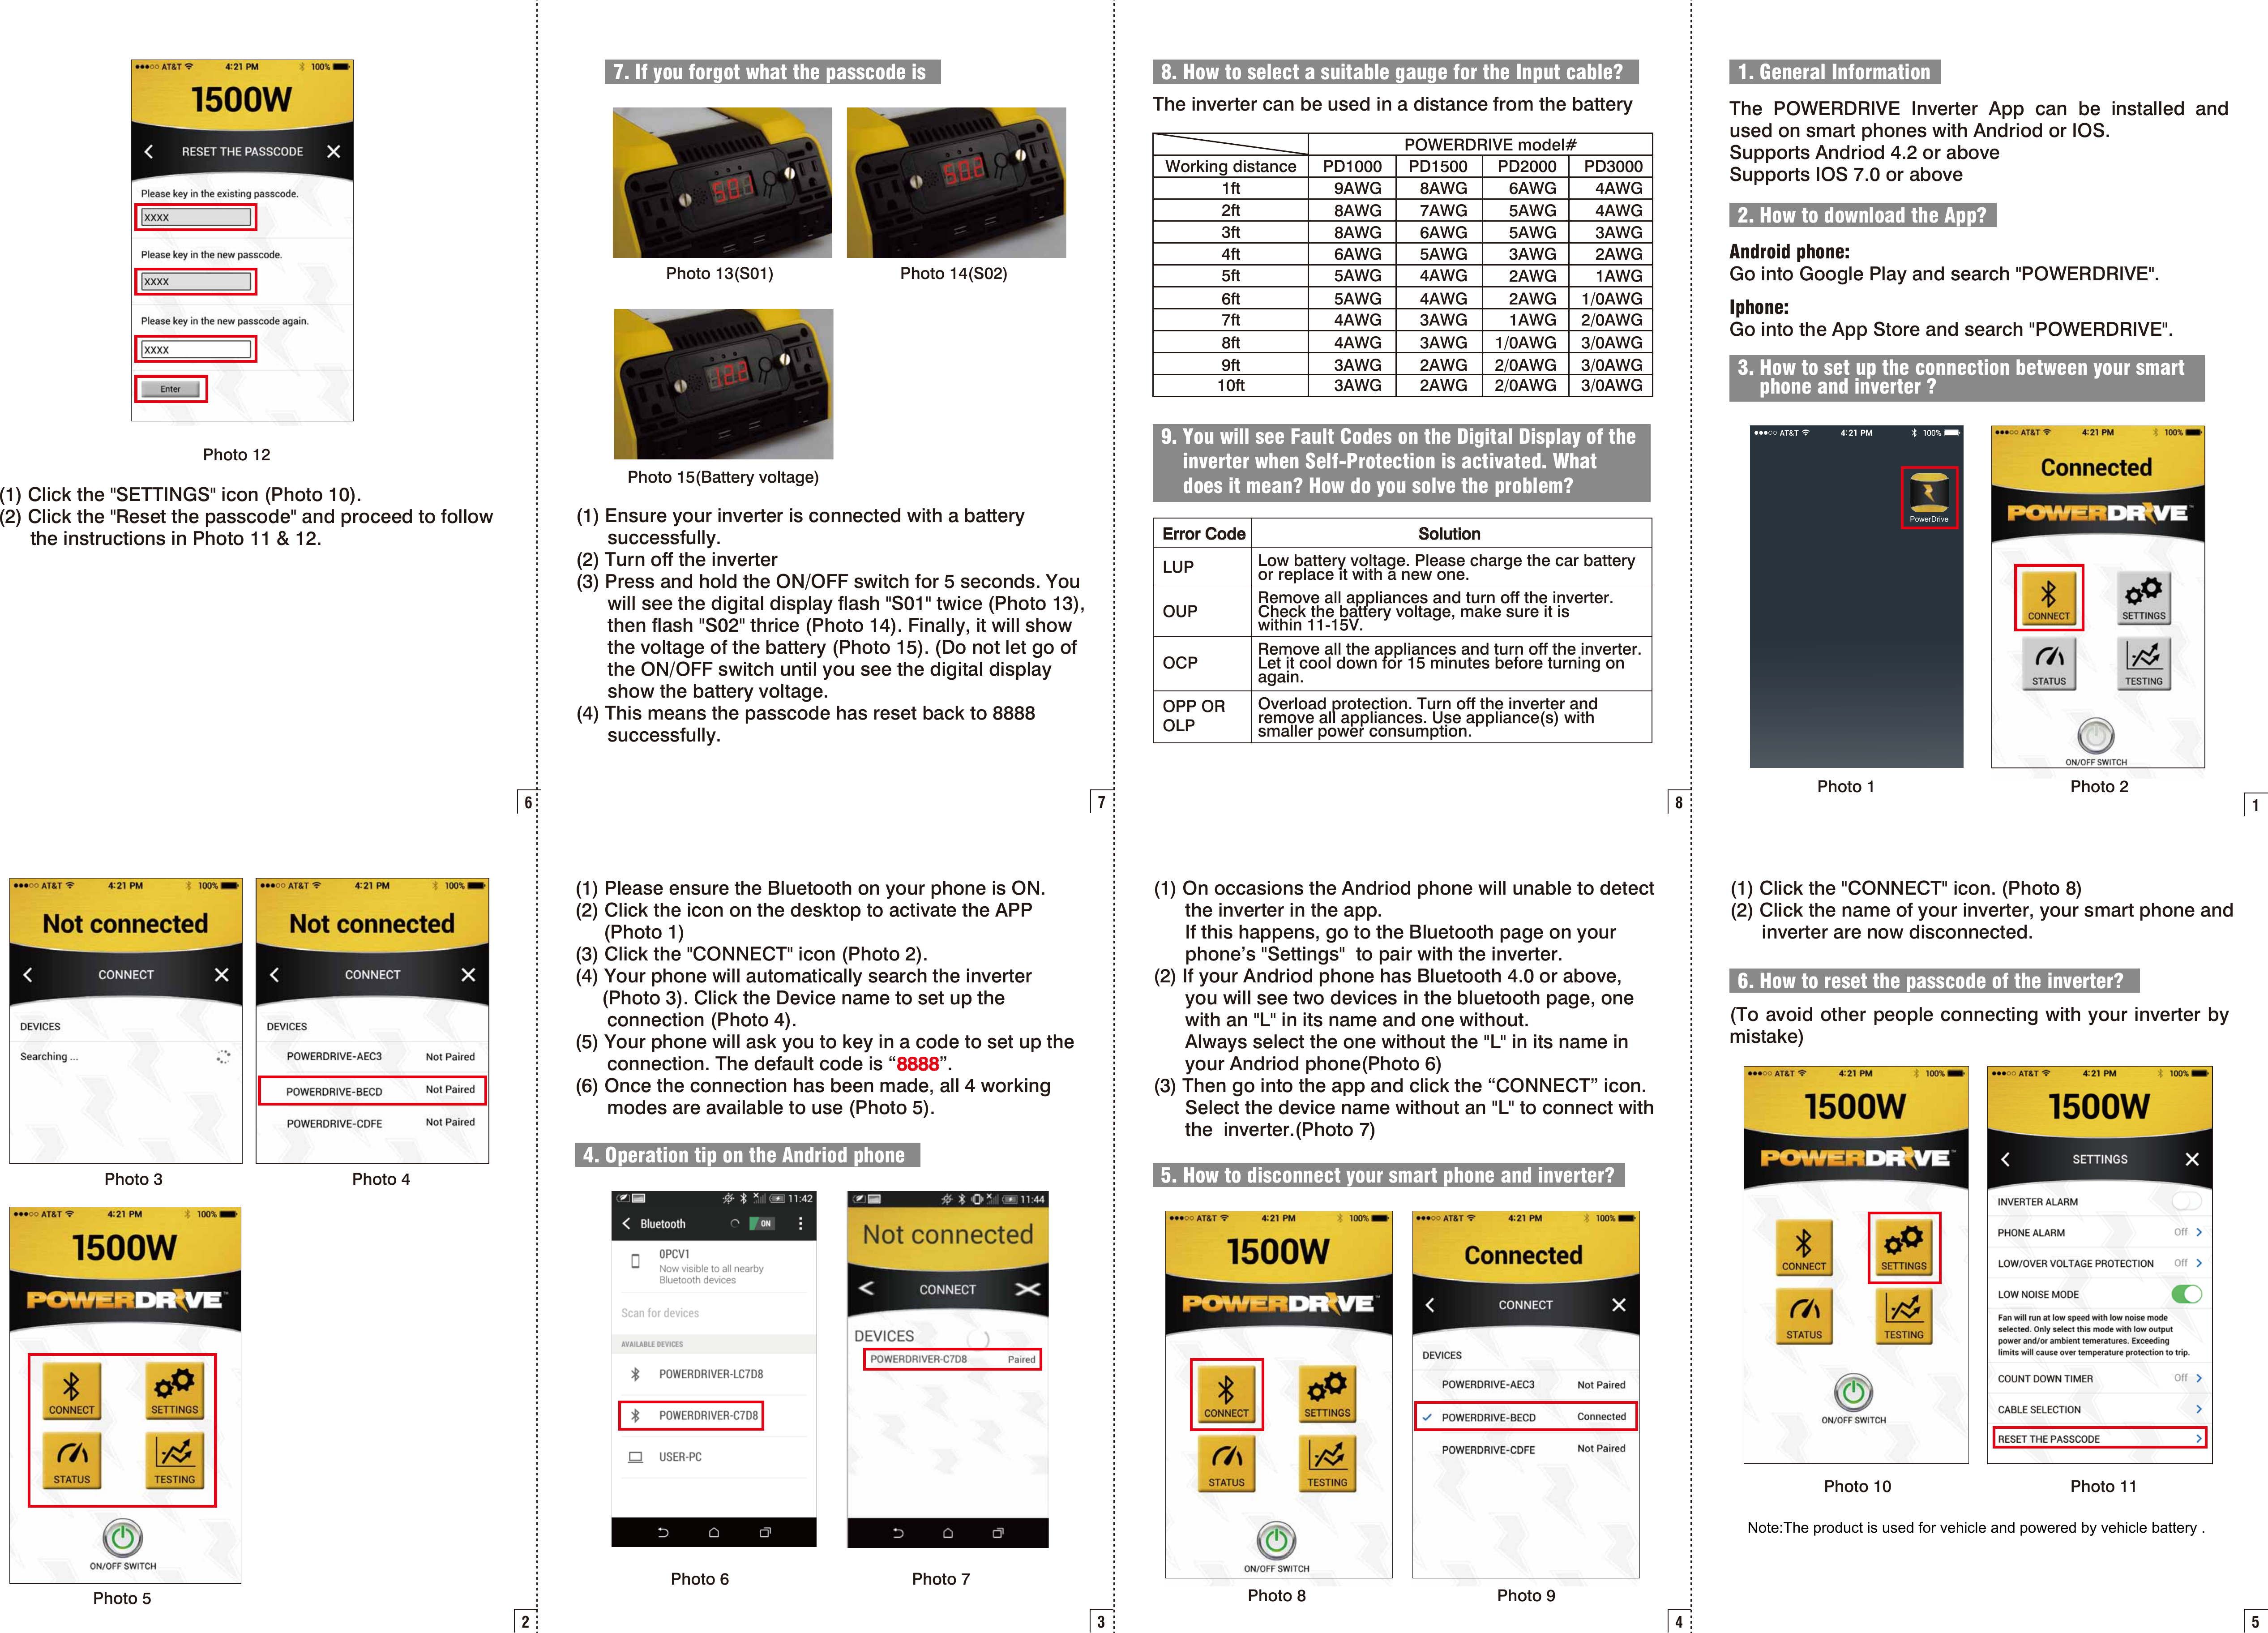 New Focus Lighting And Power Technology 7967 Bluetooth Module User Manual App 20141222